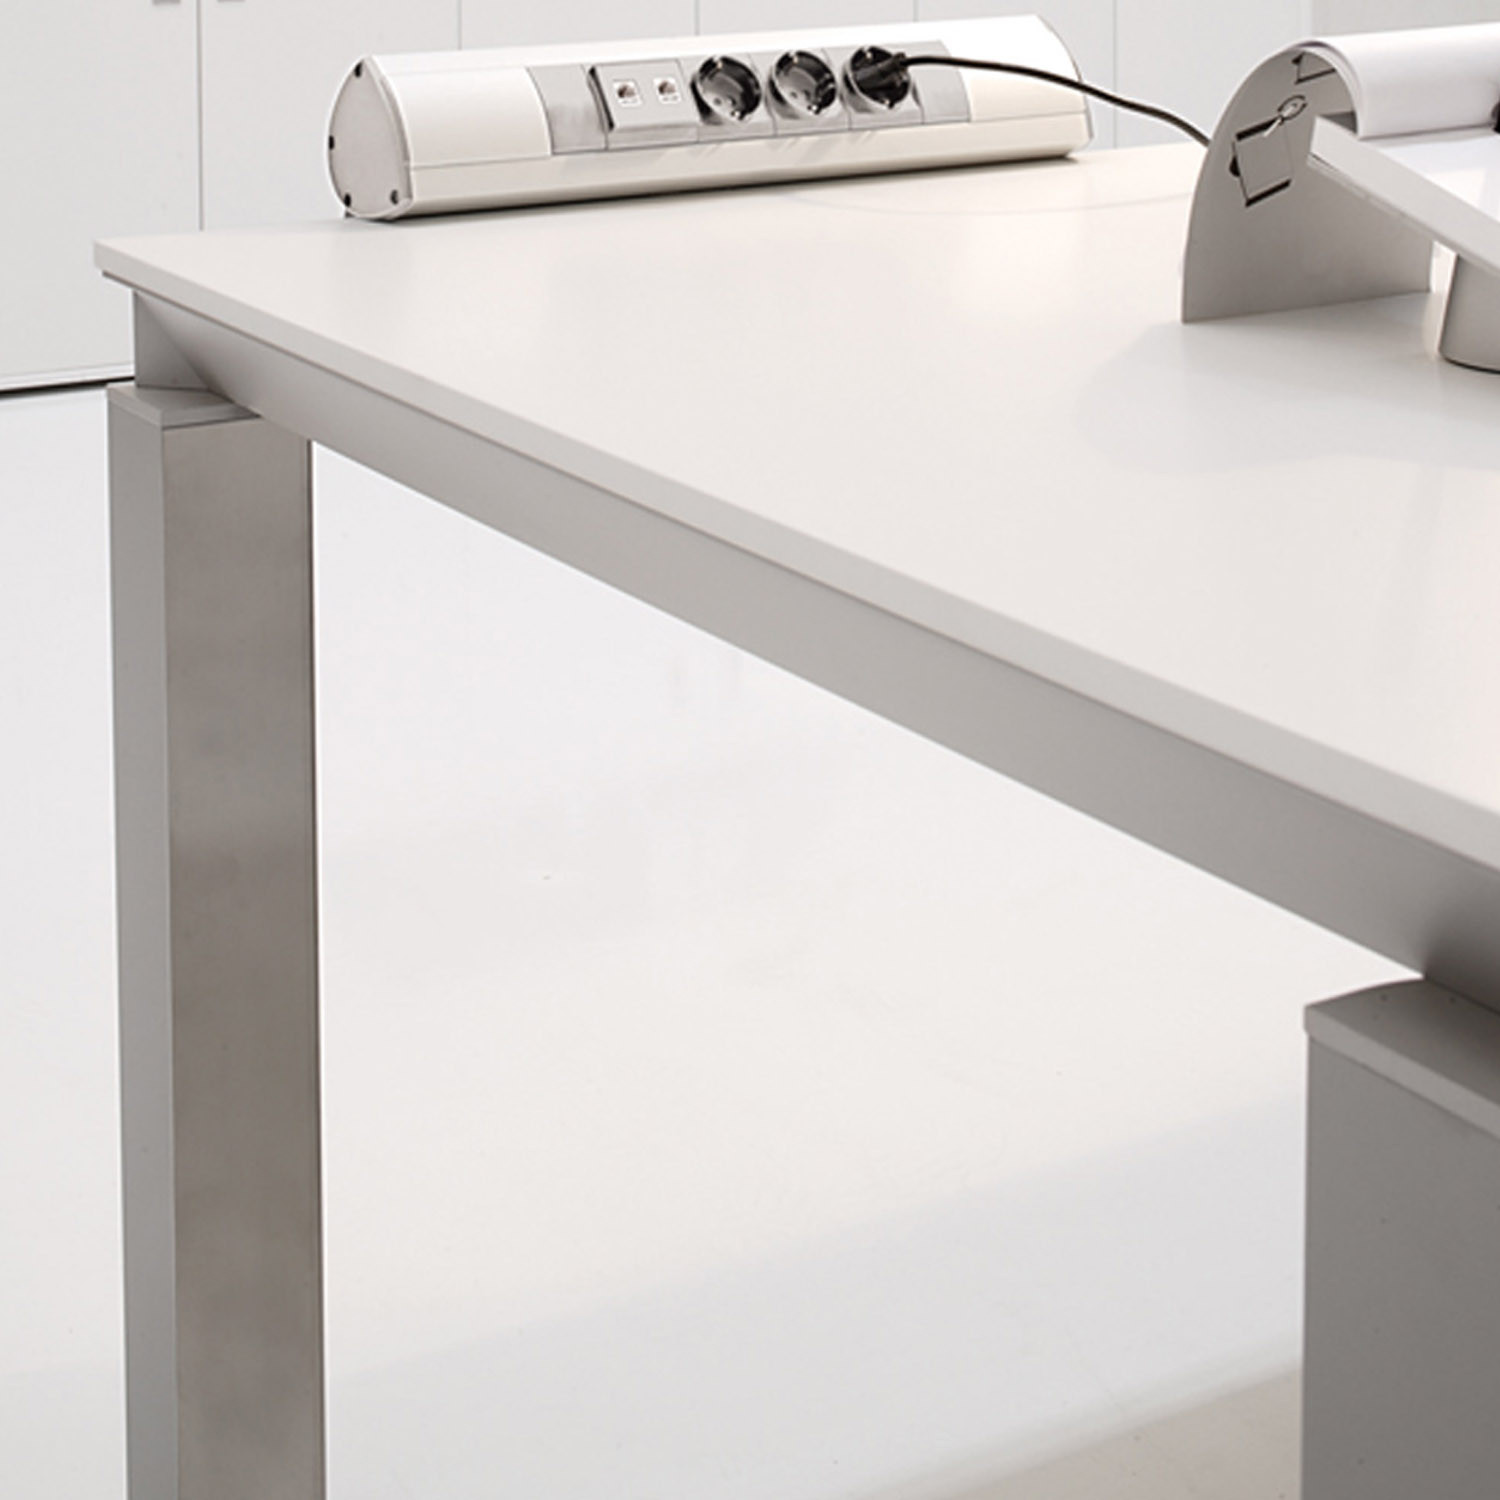 Han Bench Desk Module from Apres